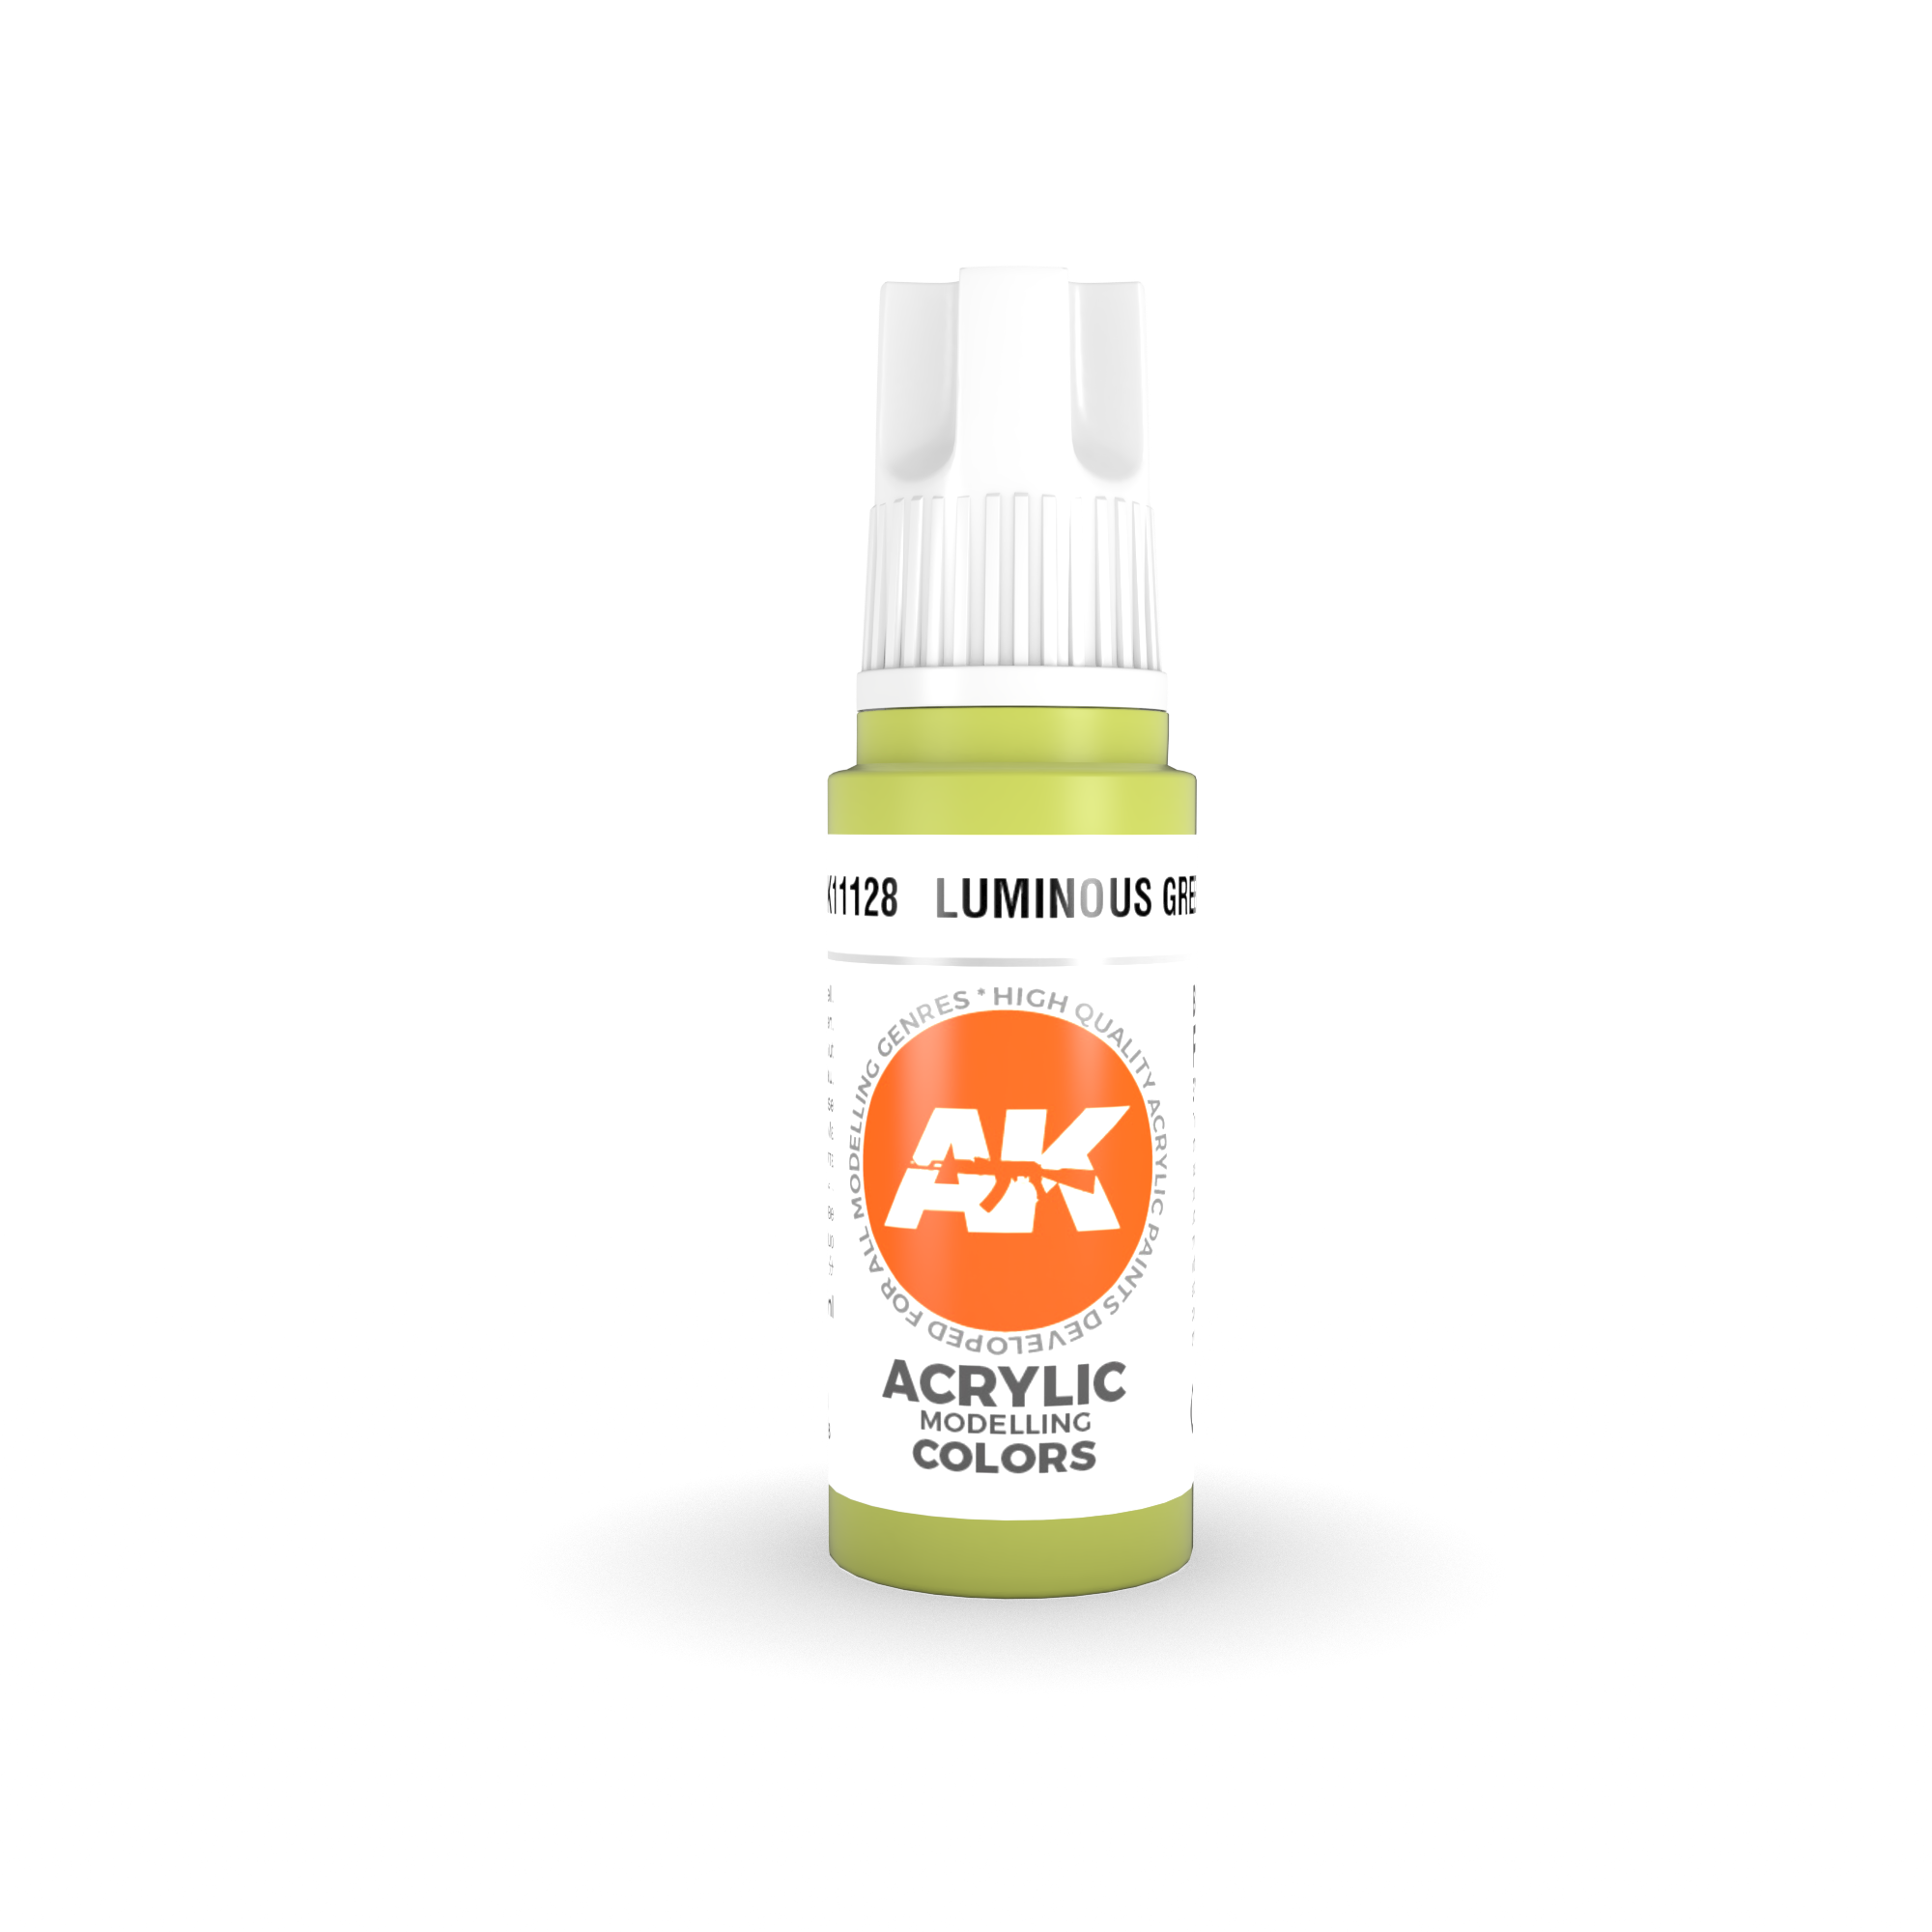 AK-Interactive Luminous Green Acrylic Modelling Color - 17ml - AK-11128